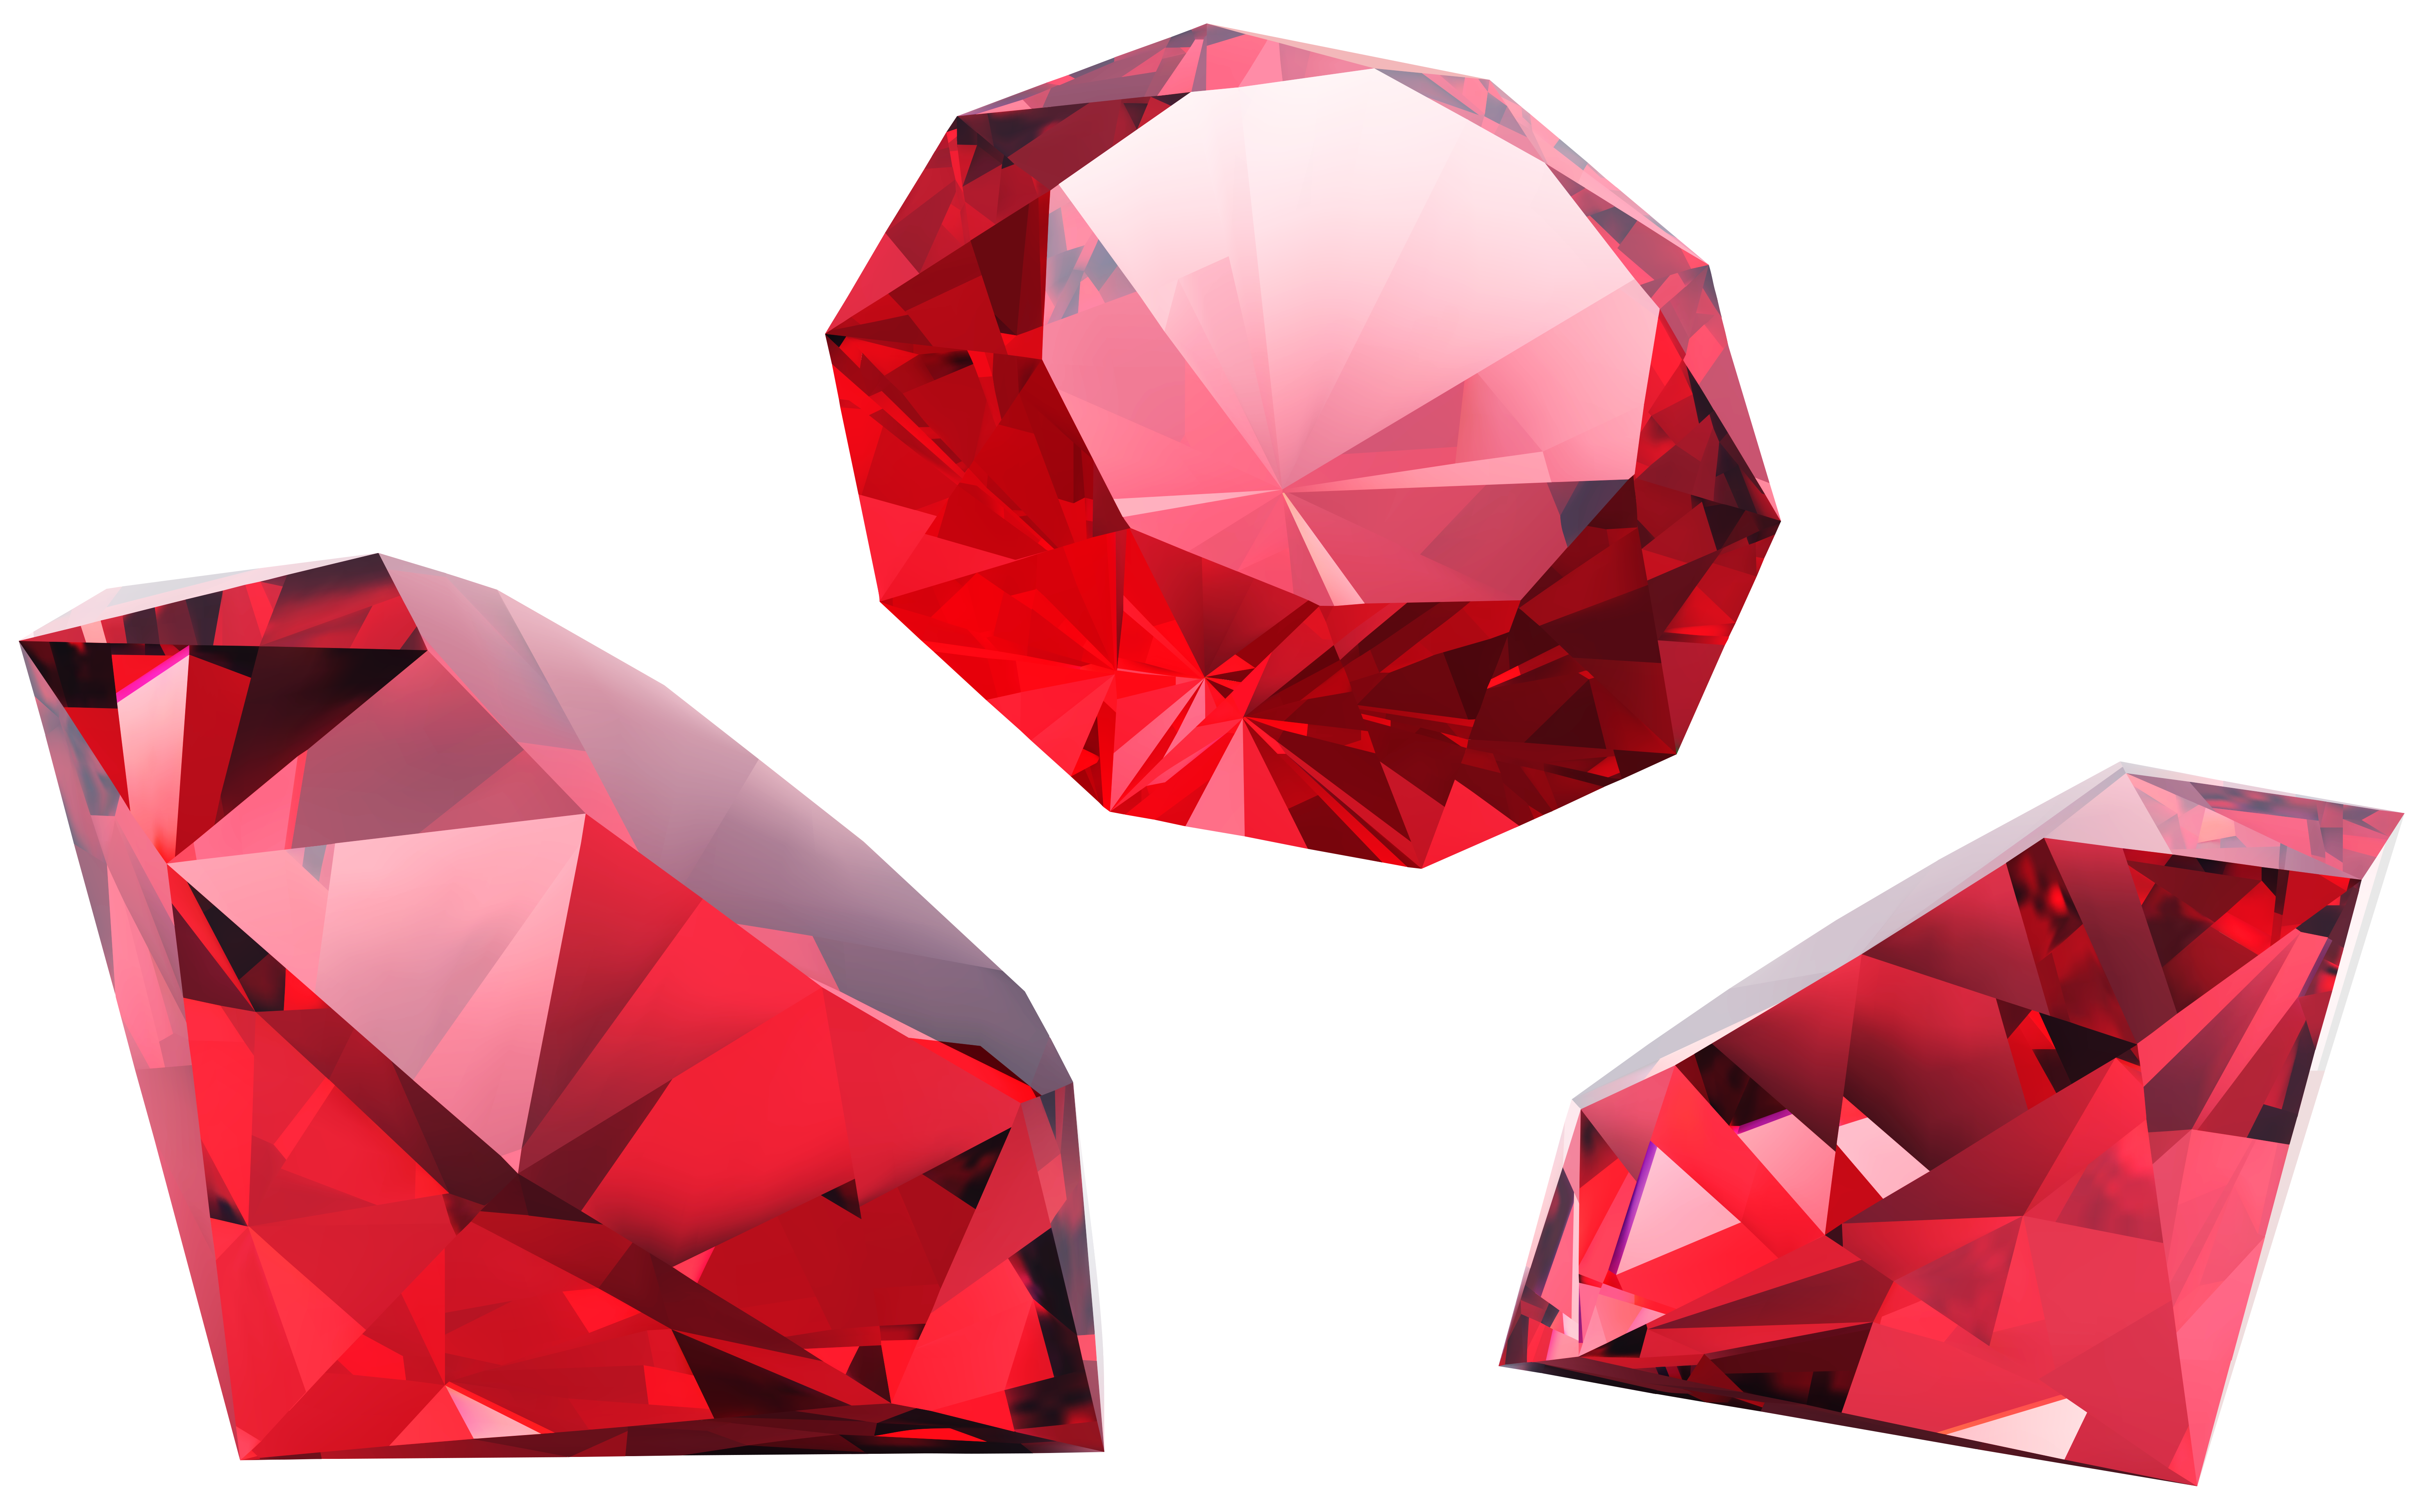 Red diamond png. Diamonds clipart image gallery